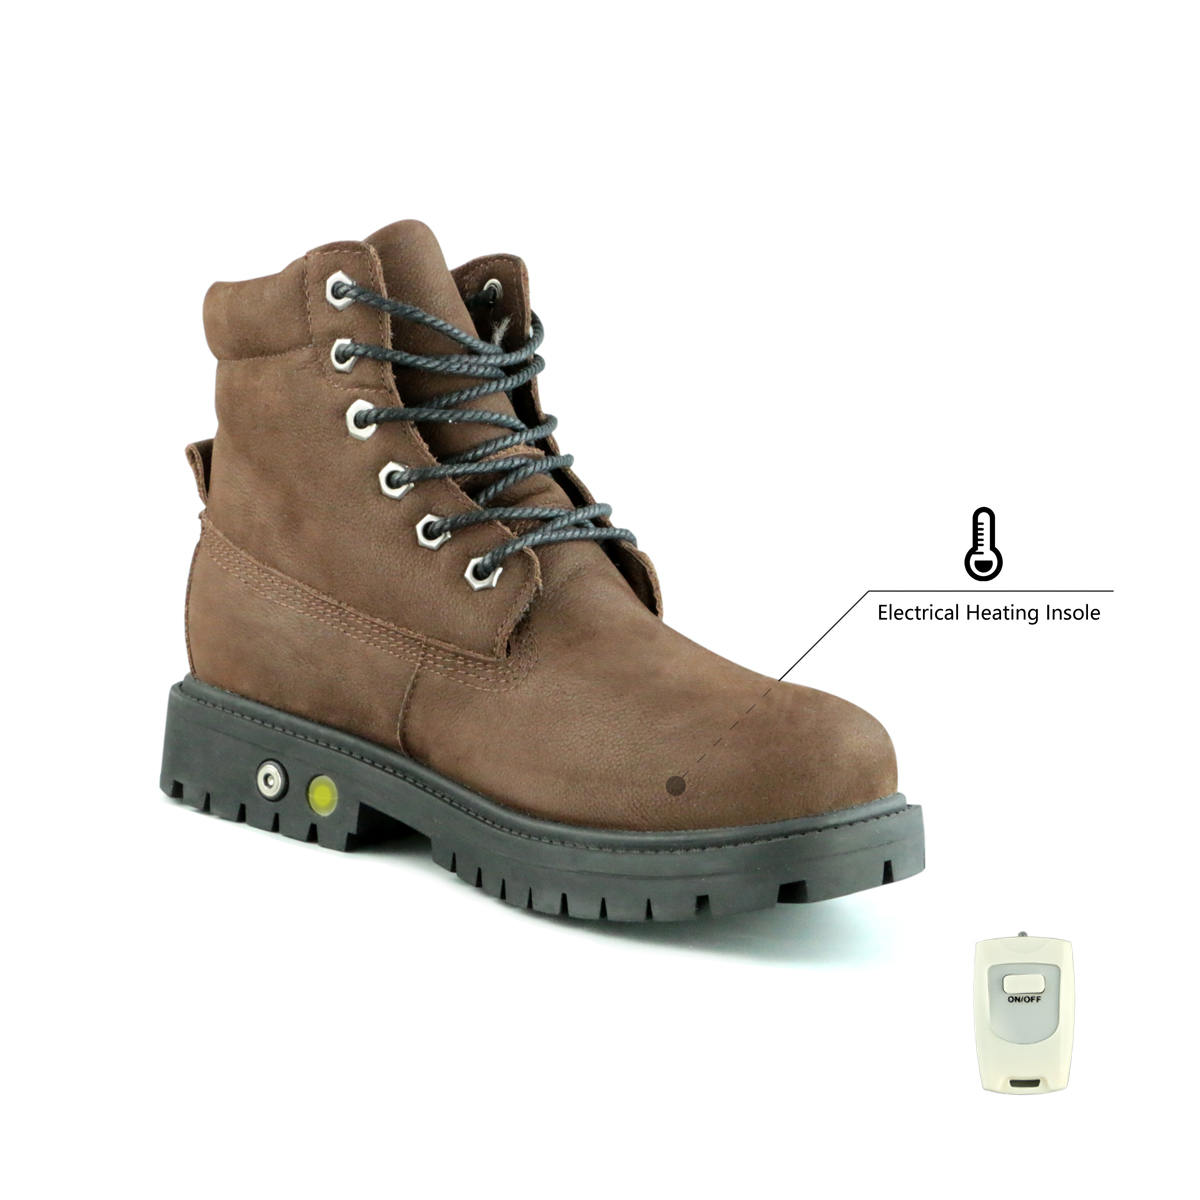 c8487006932 Men s Rechargeable Battery Heated Boots